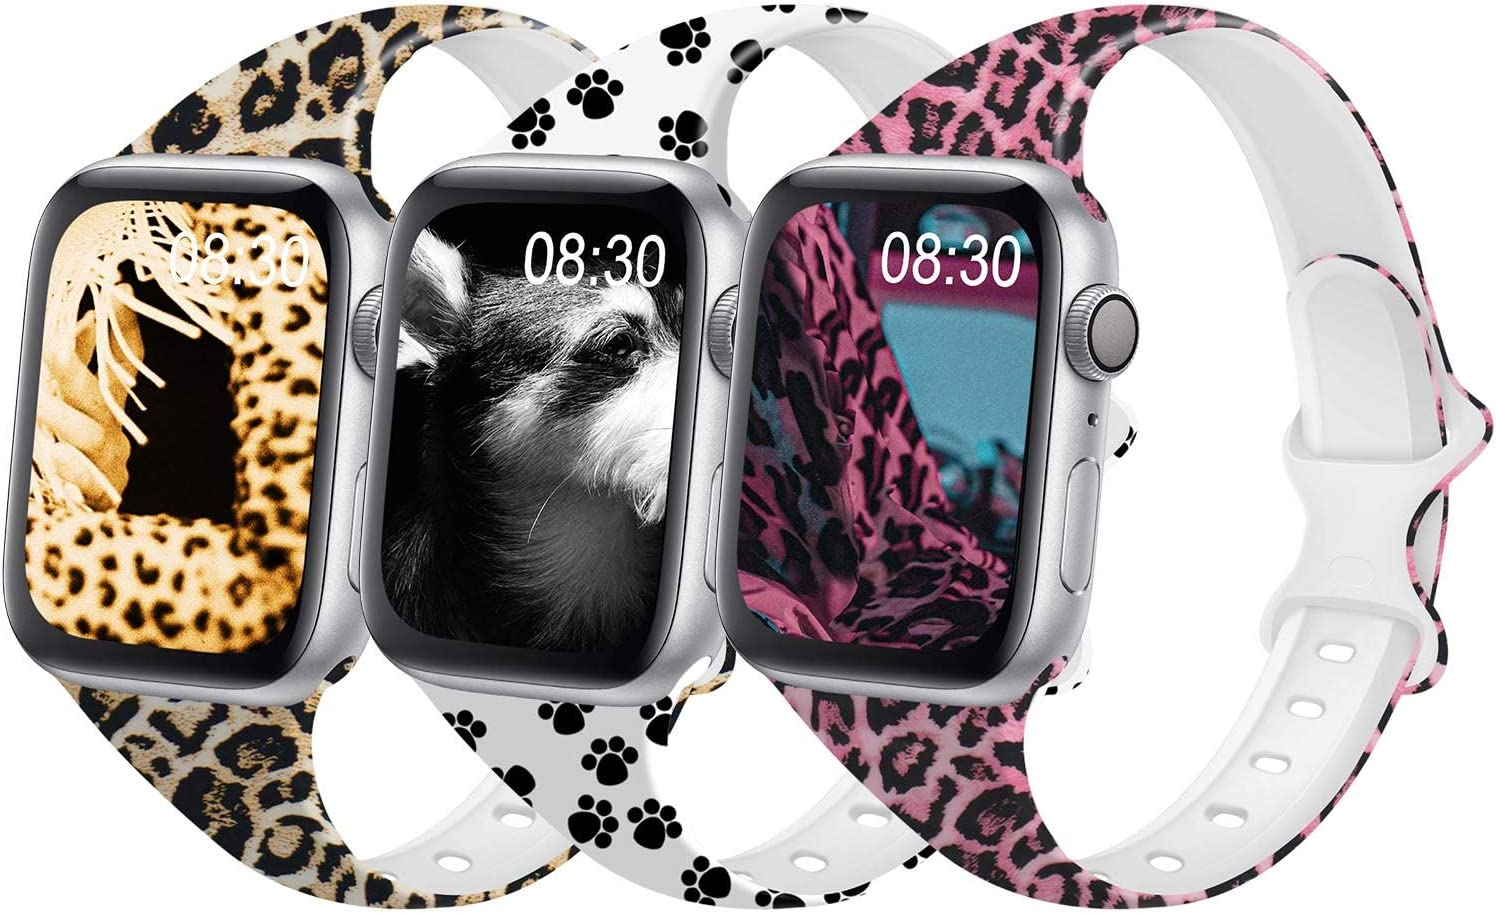 DYKEISS Pattern Printed Slim Silicone Band Compatible for Apple Watch Band 38mm 42mm 40mm 44mm, Thin Narrow Replacement Strap for iWatch Series 5/4/3/2/1 (Leopard/Paw/Pink Leopard, 38mm/40mm)